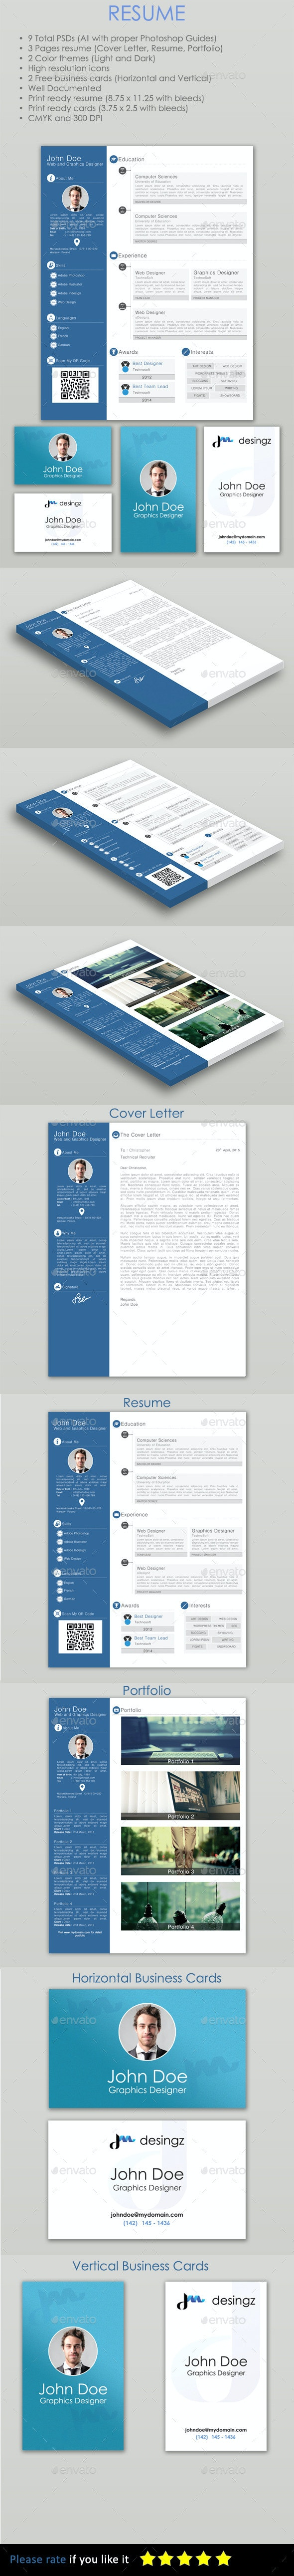 Resume - PSD Template - Resumes Stationery